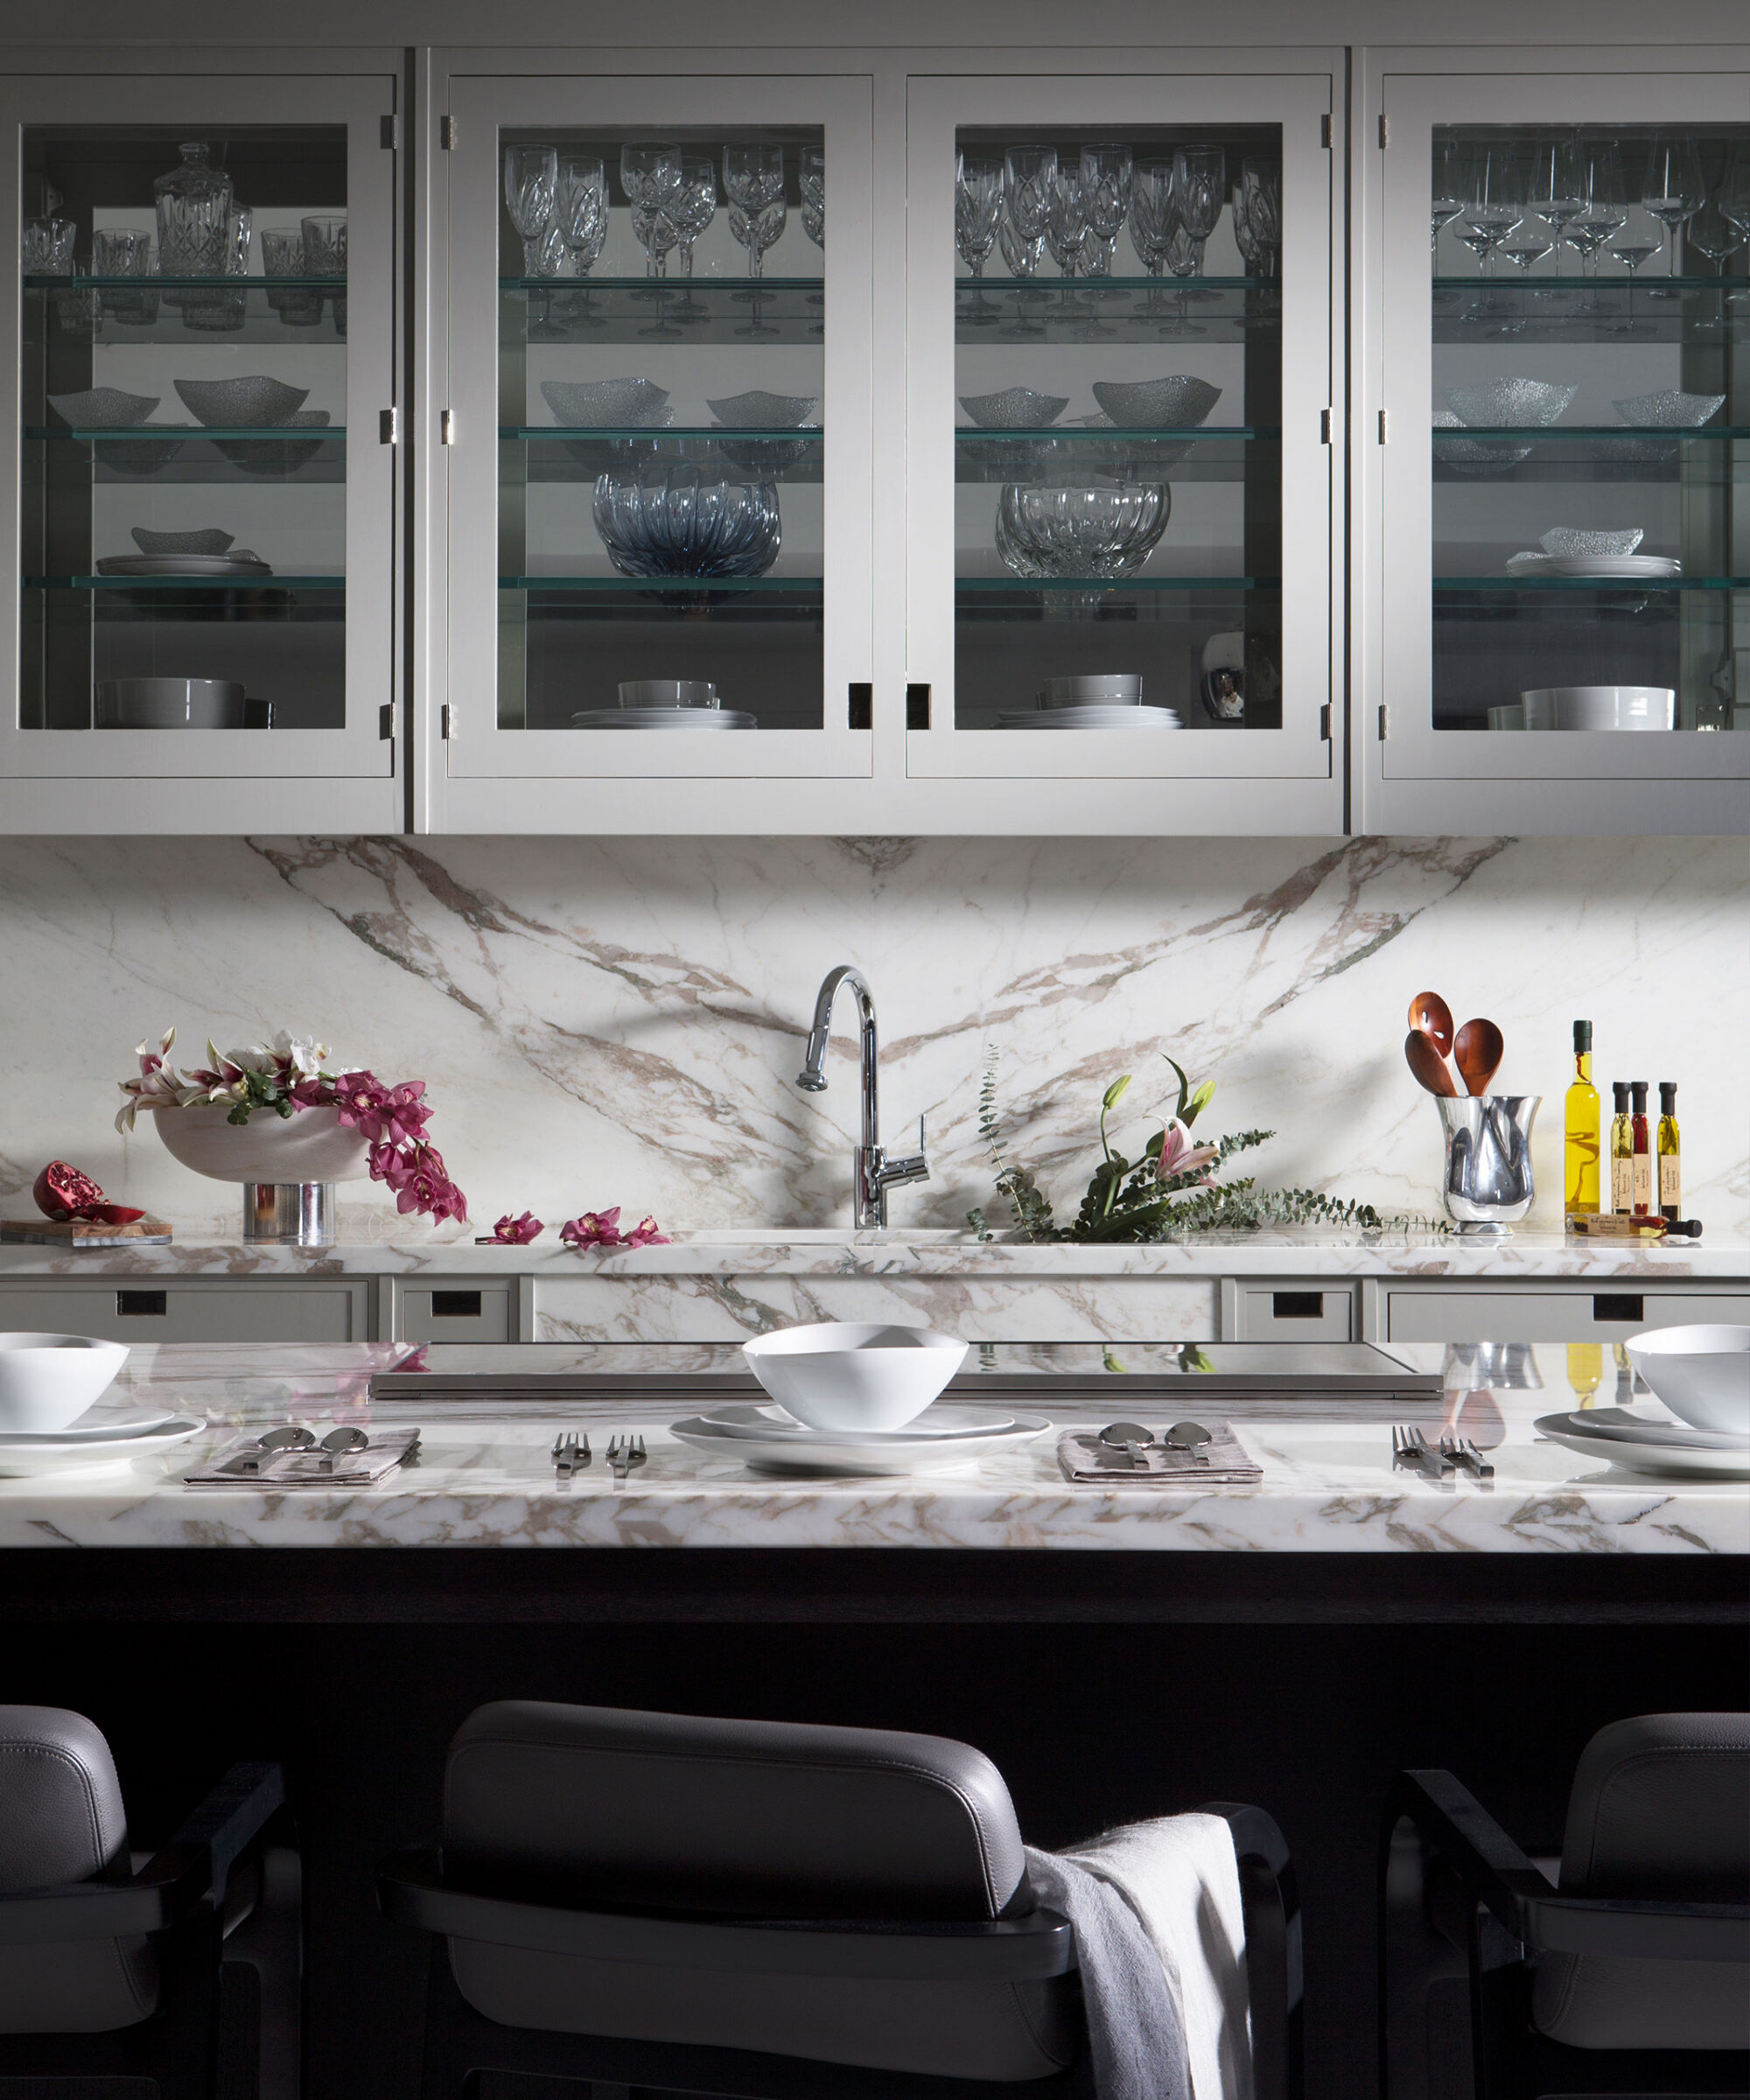 A Smallbone Macassar kitchen with handpainted cream cabinetry and book-matched marble splashbacks